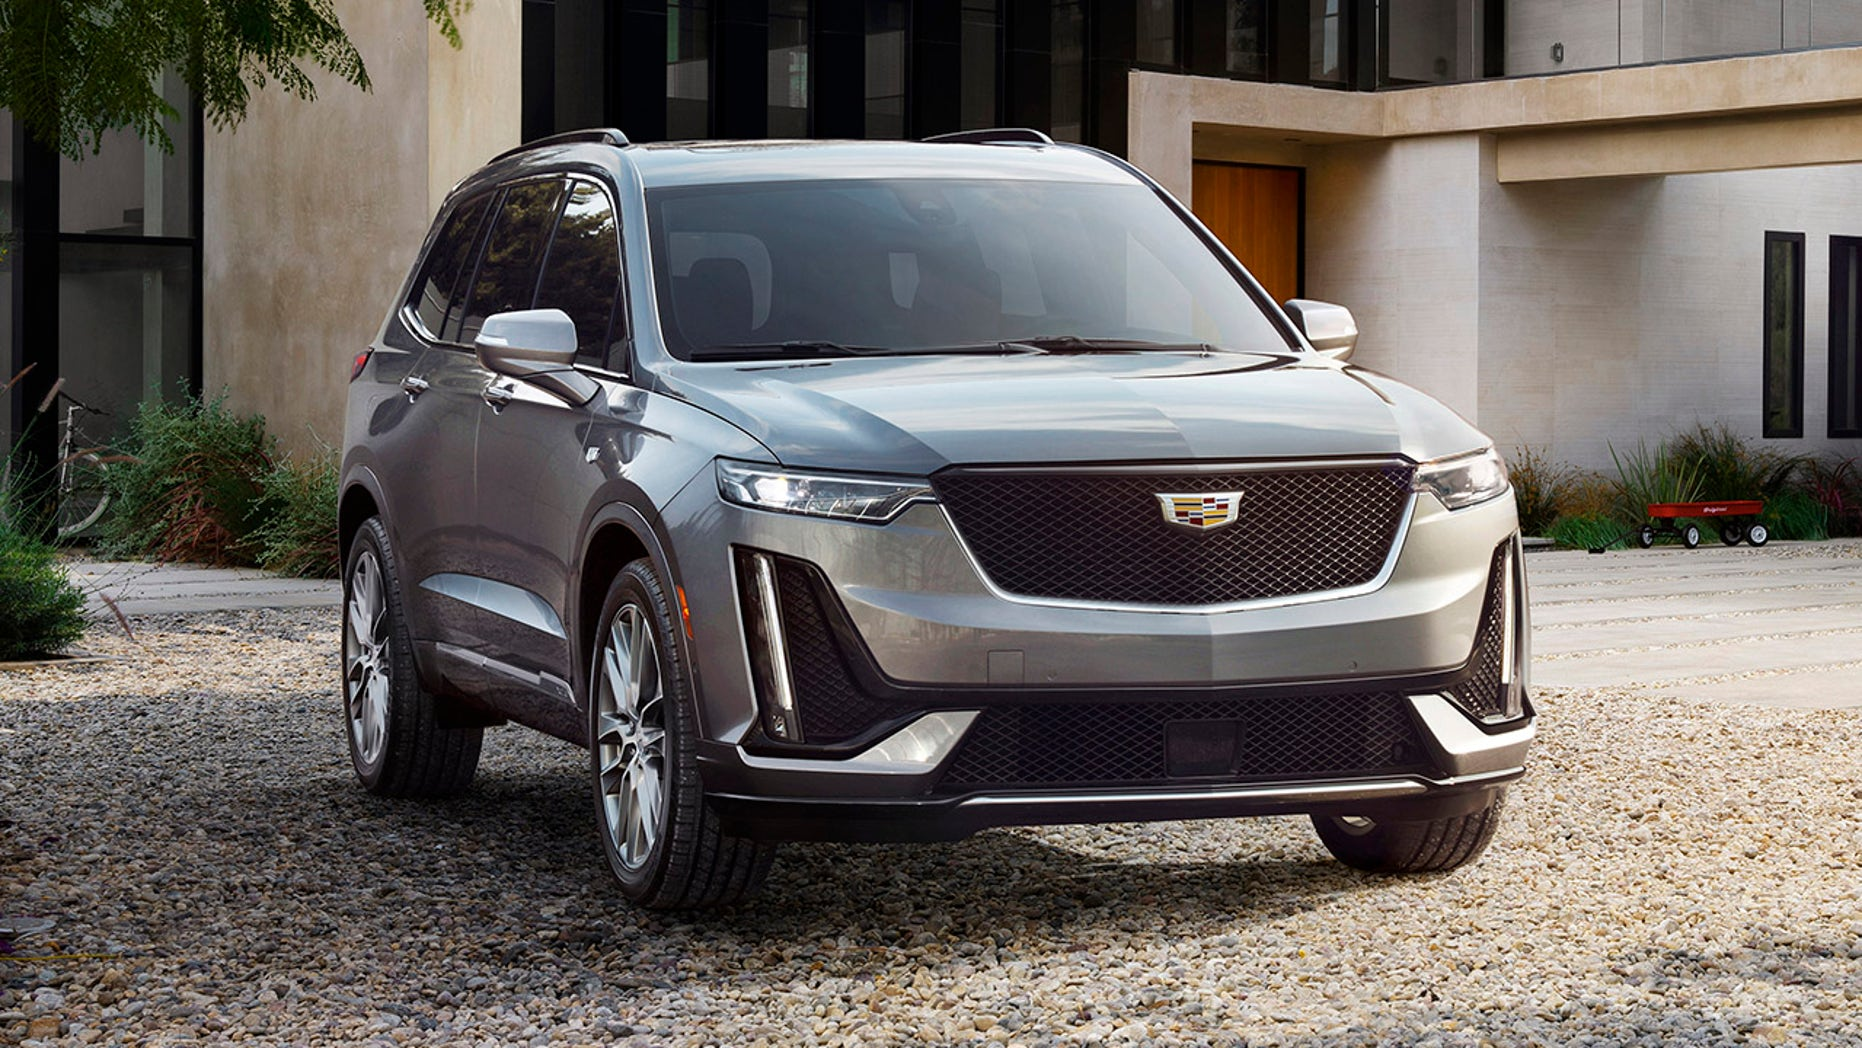 Cadillac just revealed the design of its first EV